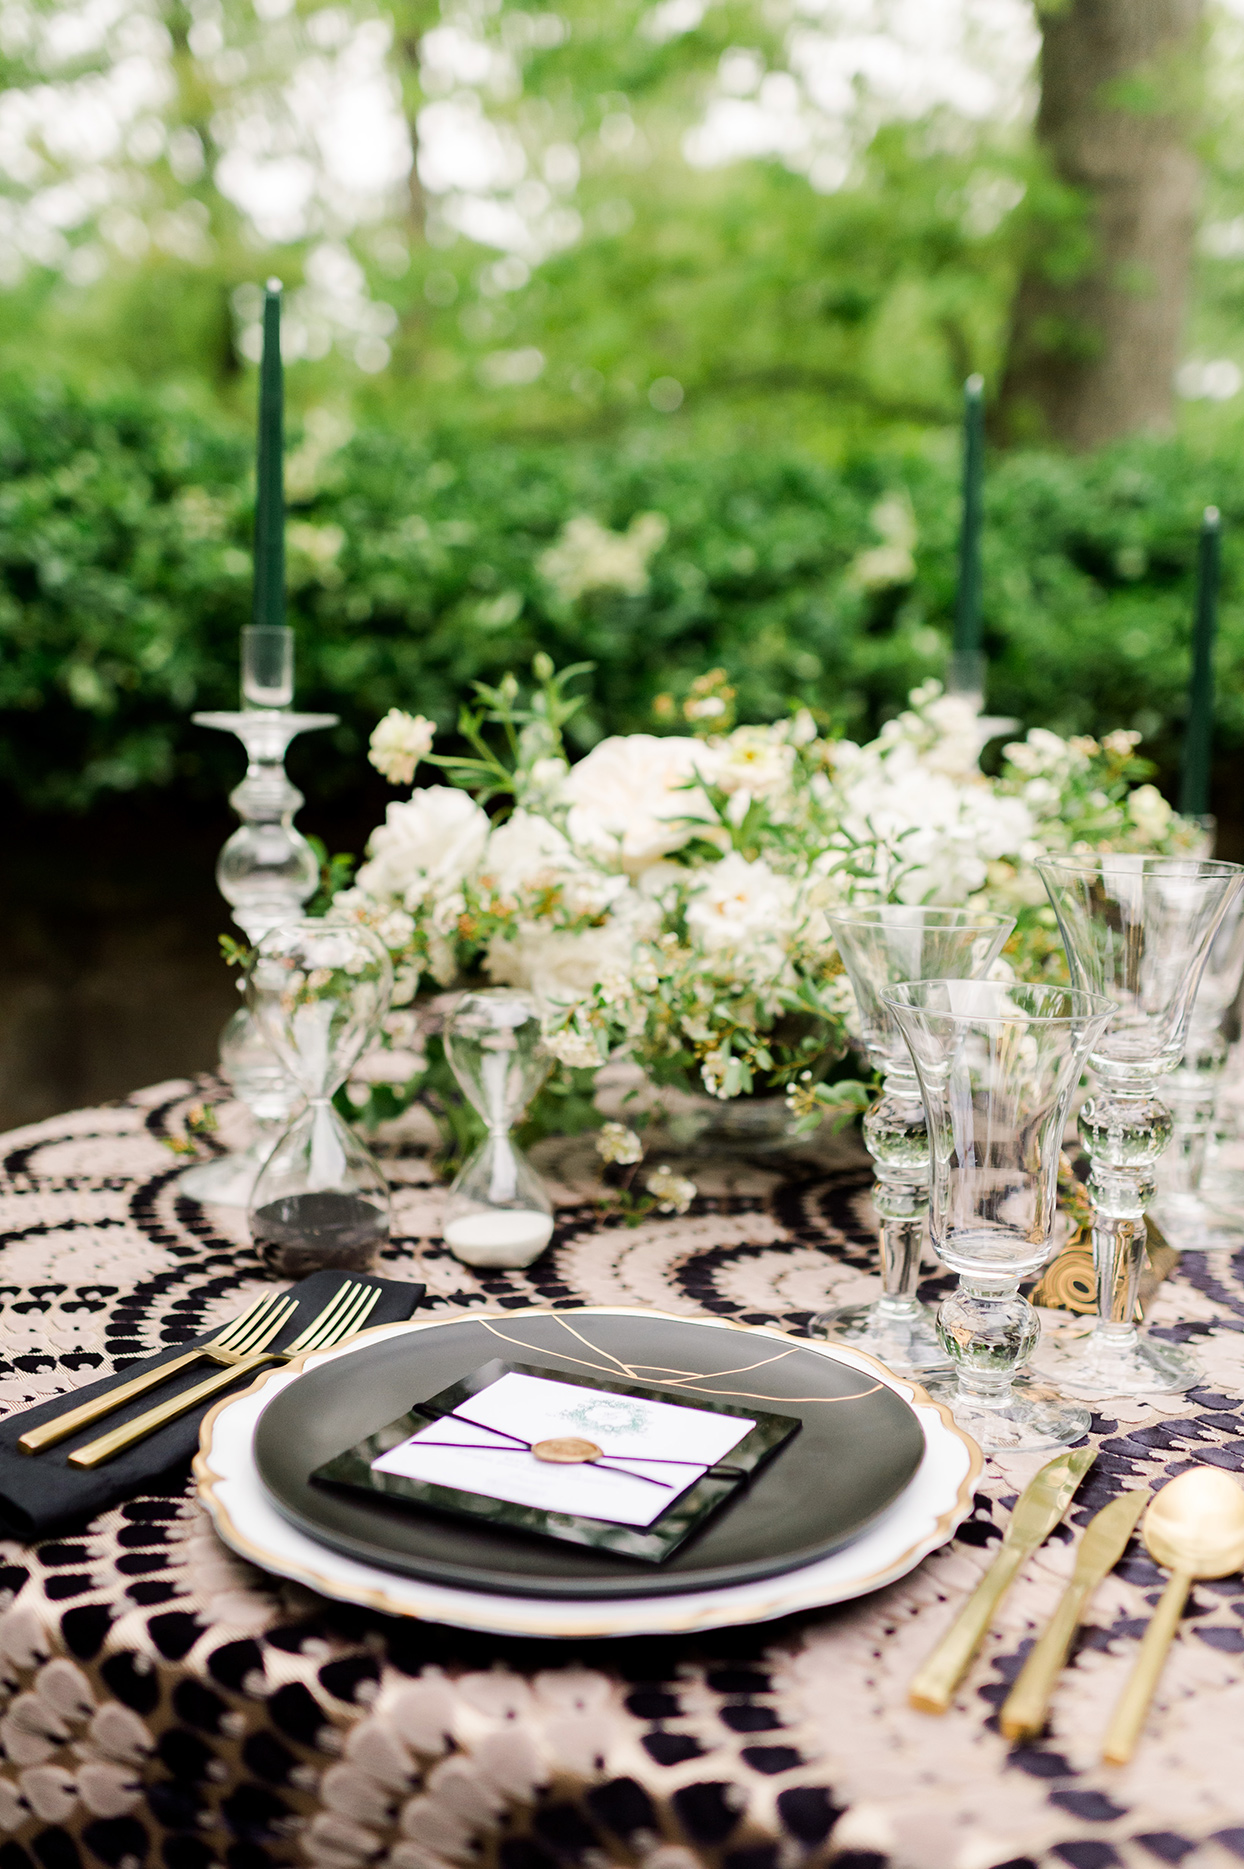 Scalloped, gold-rimmed chargers with black dinner plates